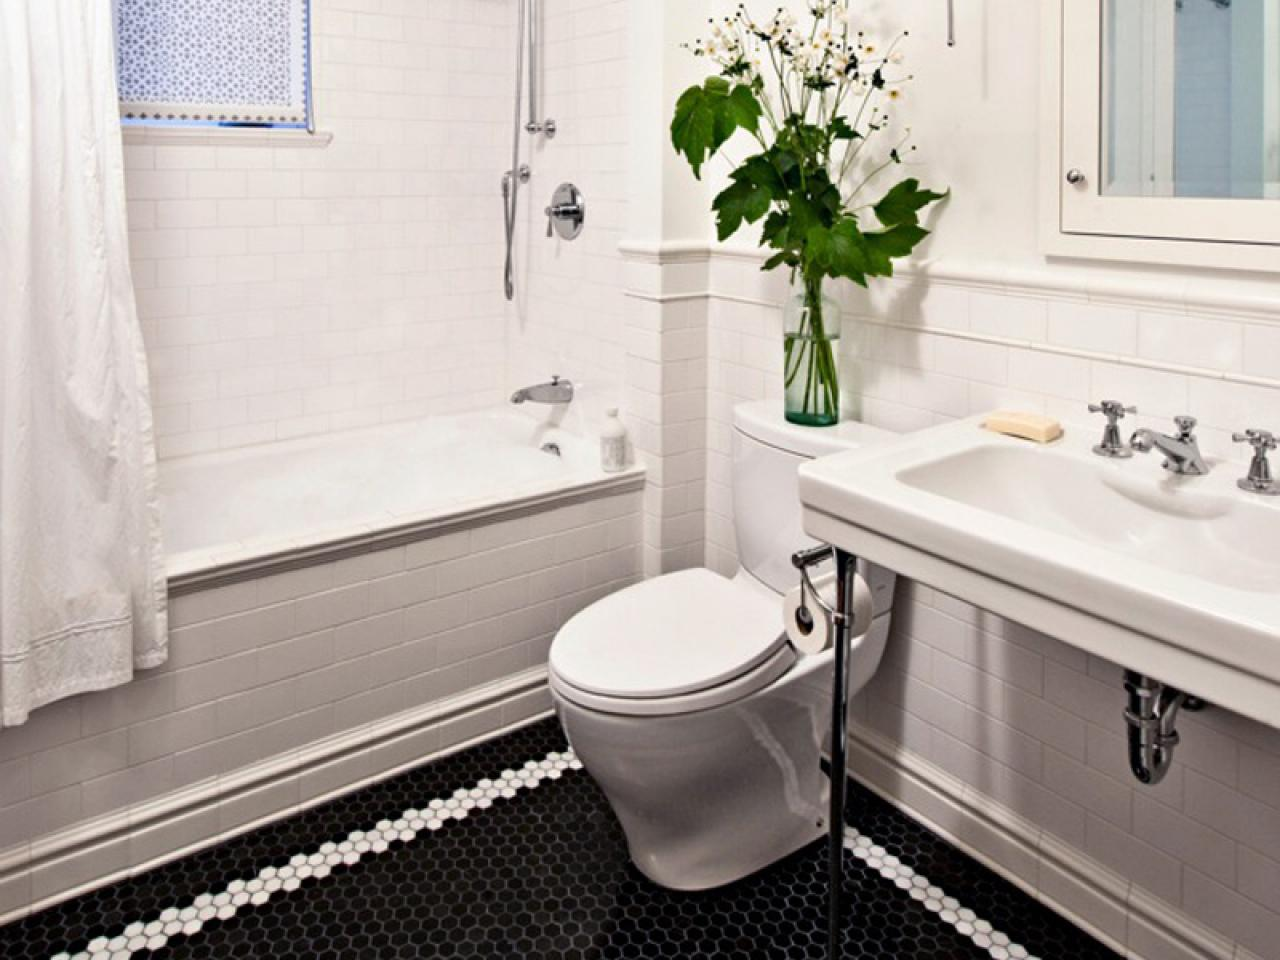 black and white bathroom tile design ideas 23 ideas and pictures of basketweave bathroom tile 25976